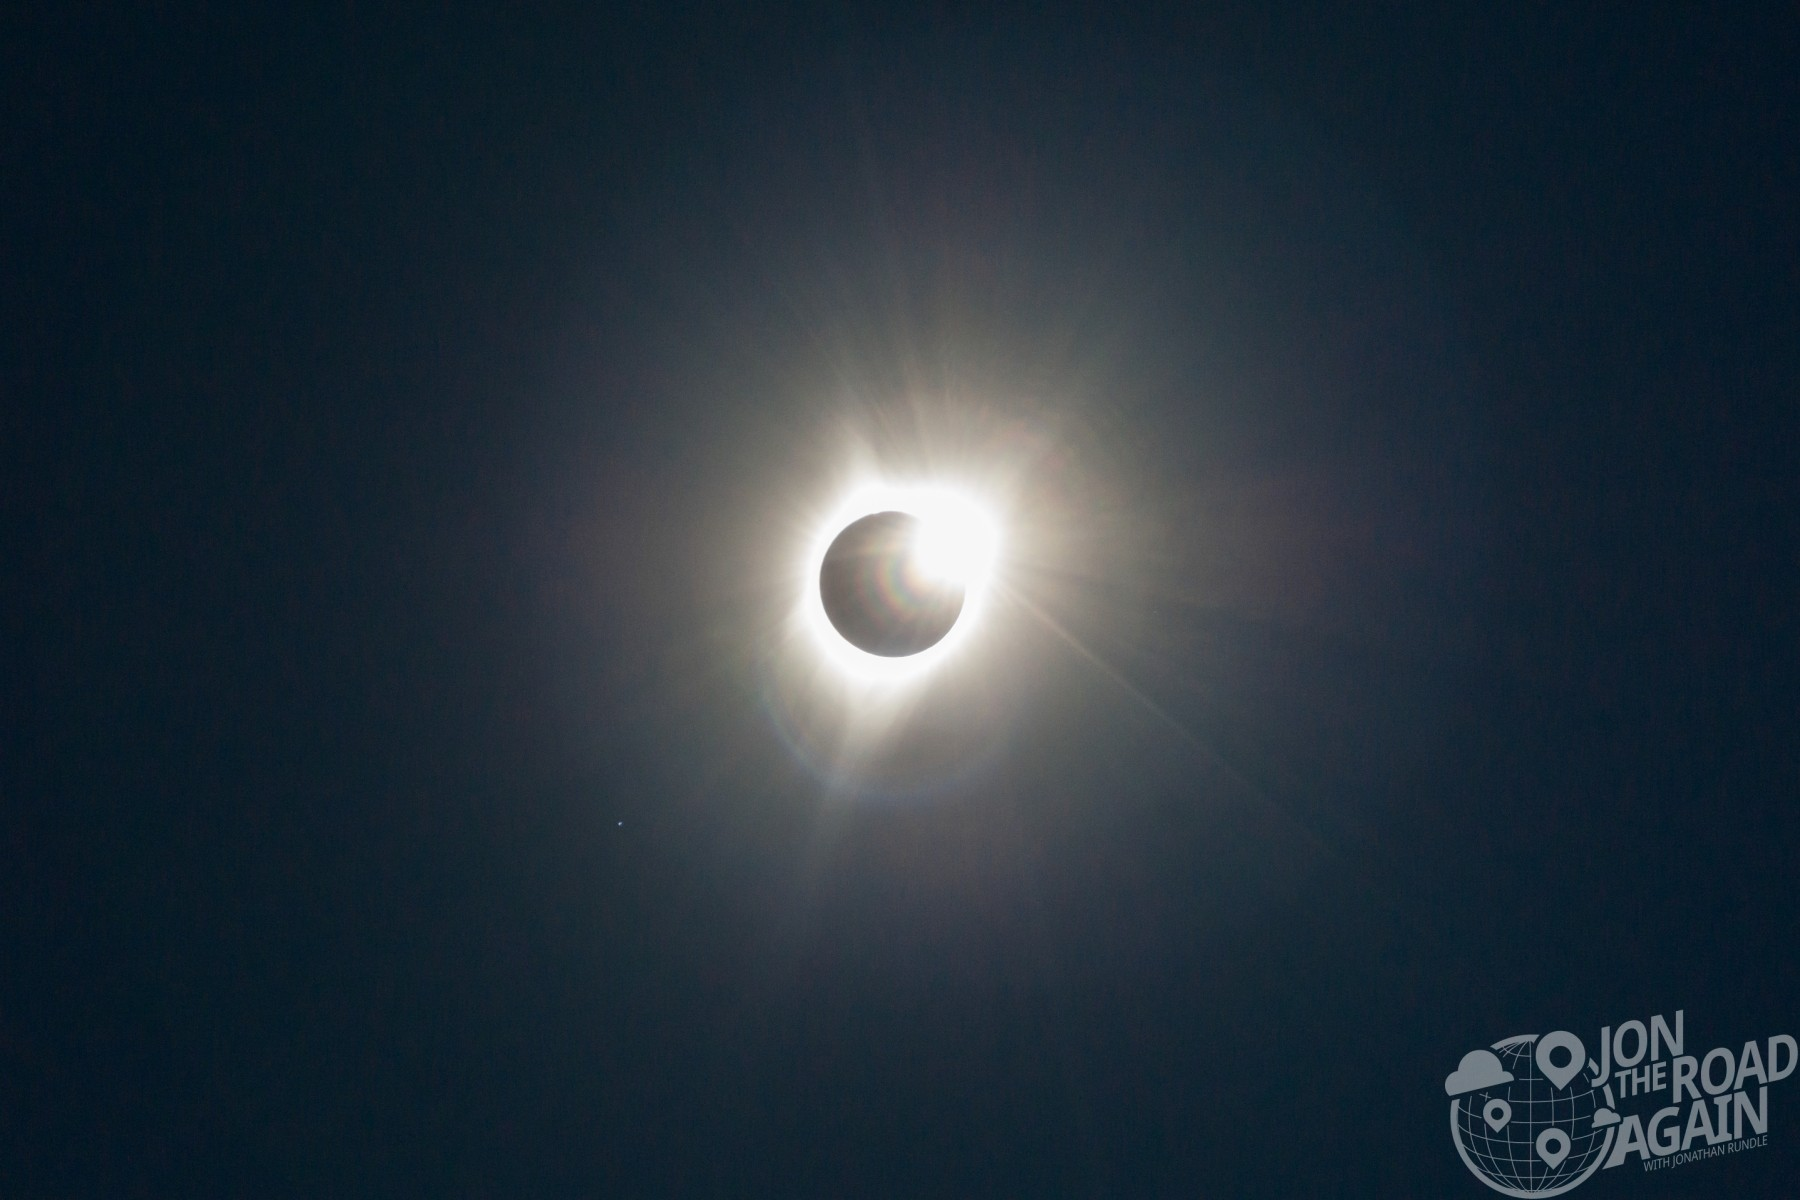 Diamond Ring eclipse